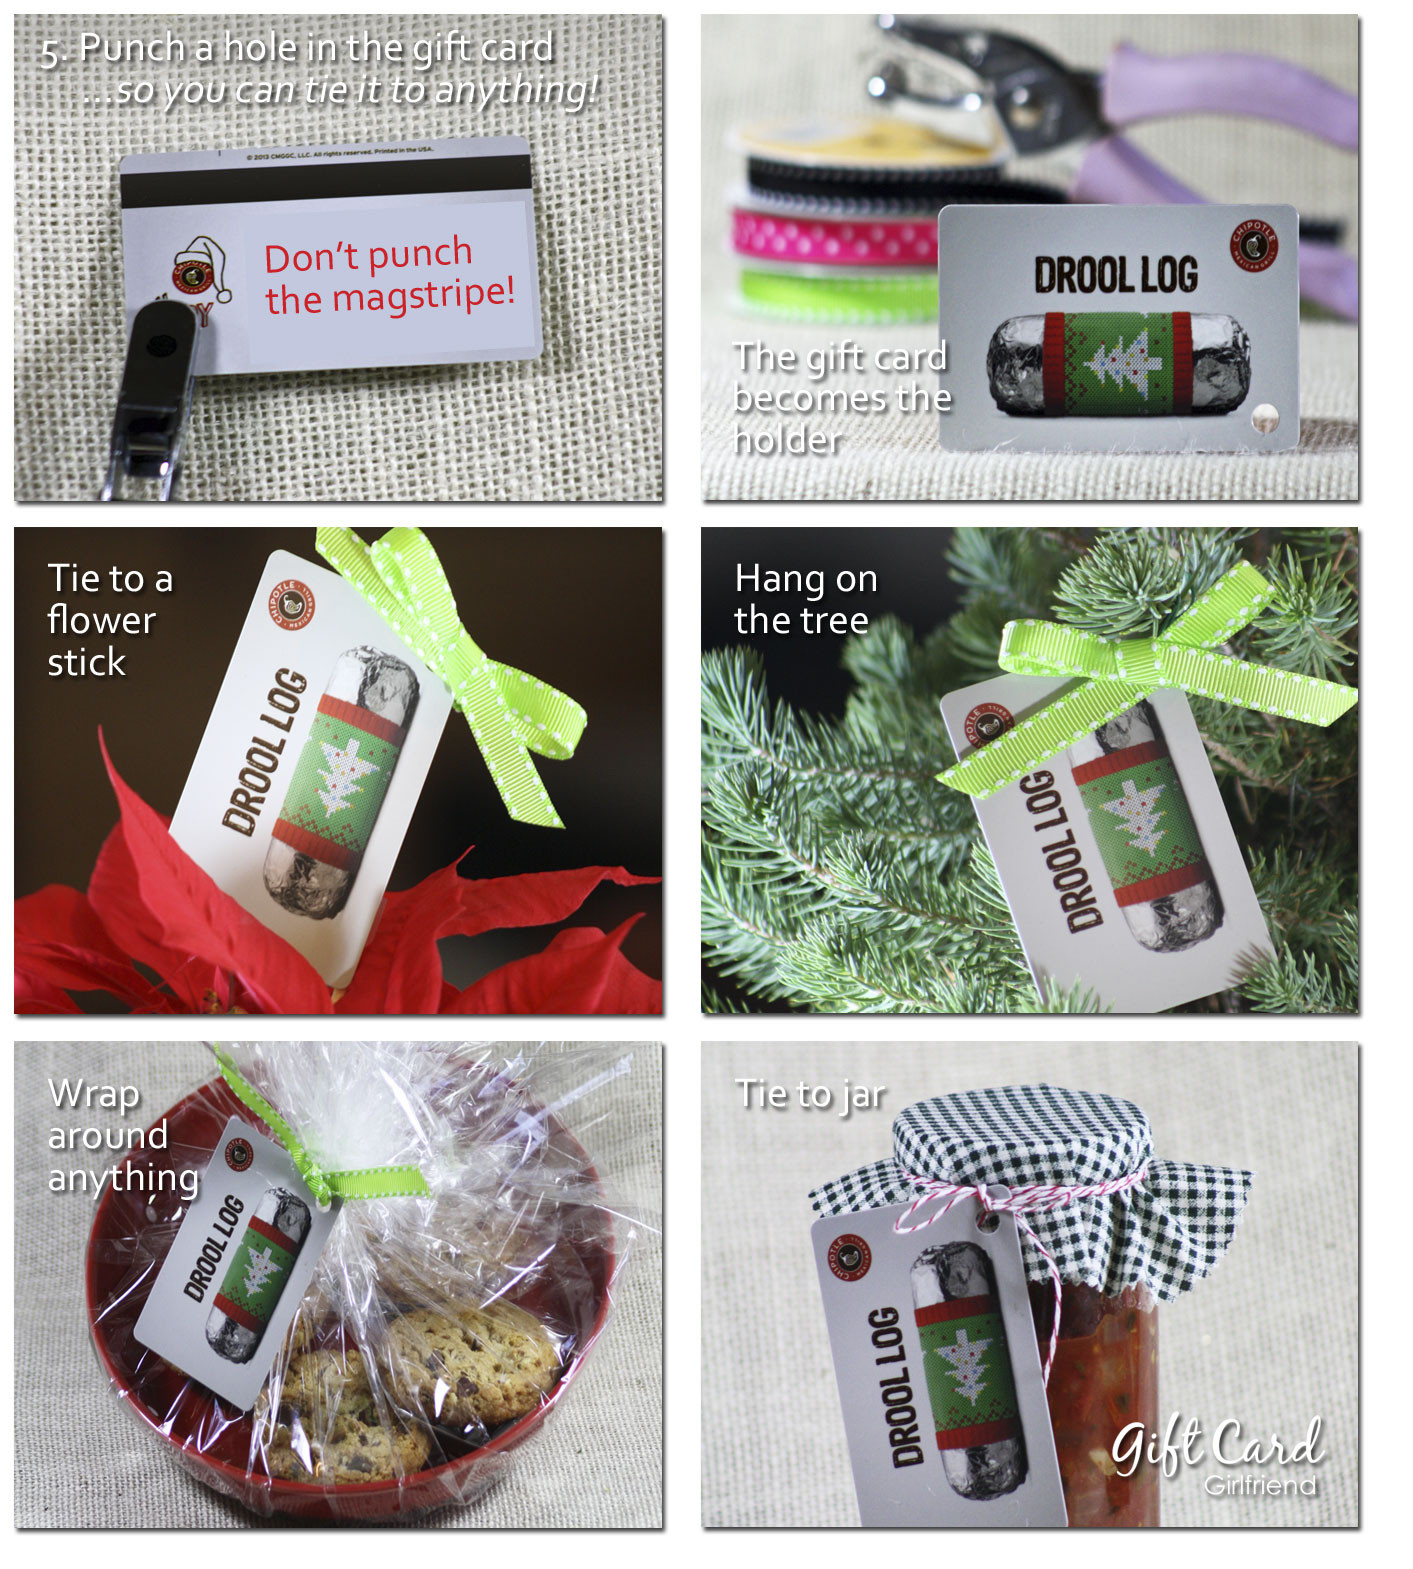 Best ideas about Gift Card Wrapping Ideas . Save or Pin Five Super Easy Last Minute Gift Card Wrapping Ideas Now.